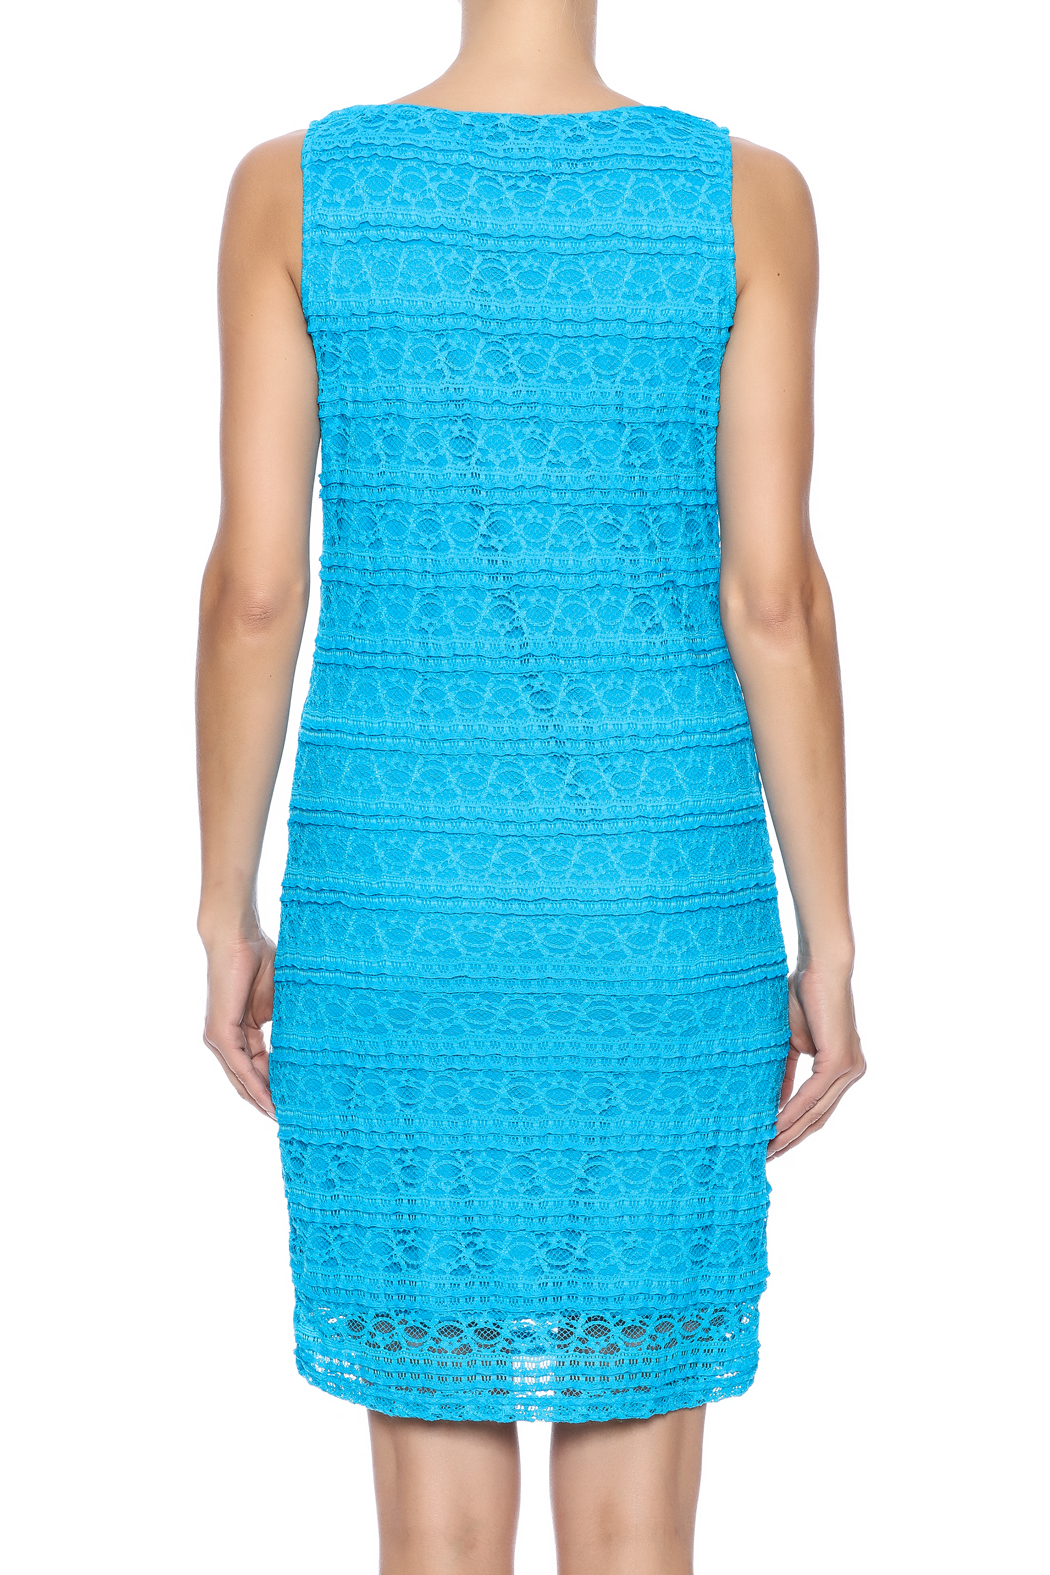 Michael Edwards Turquoise Lace Dress - Back Cropped Image